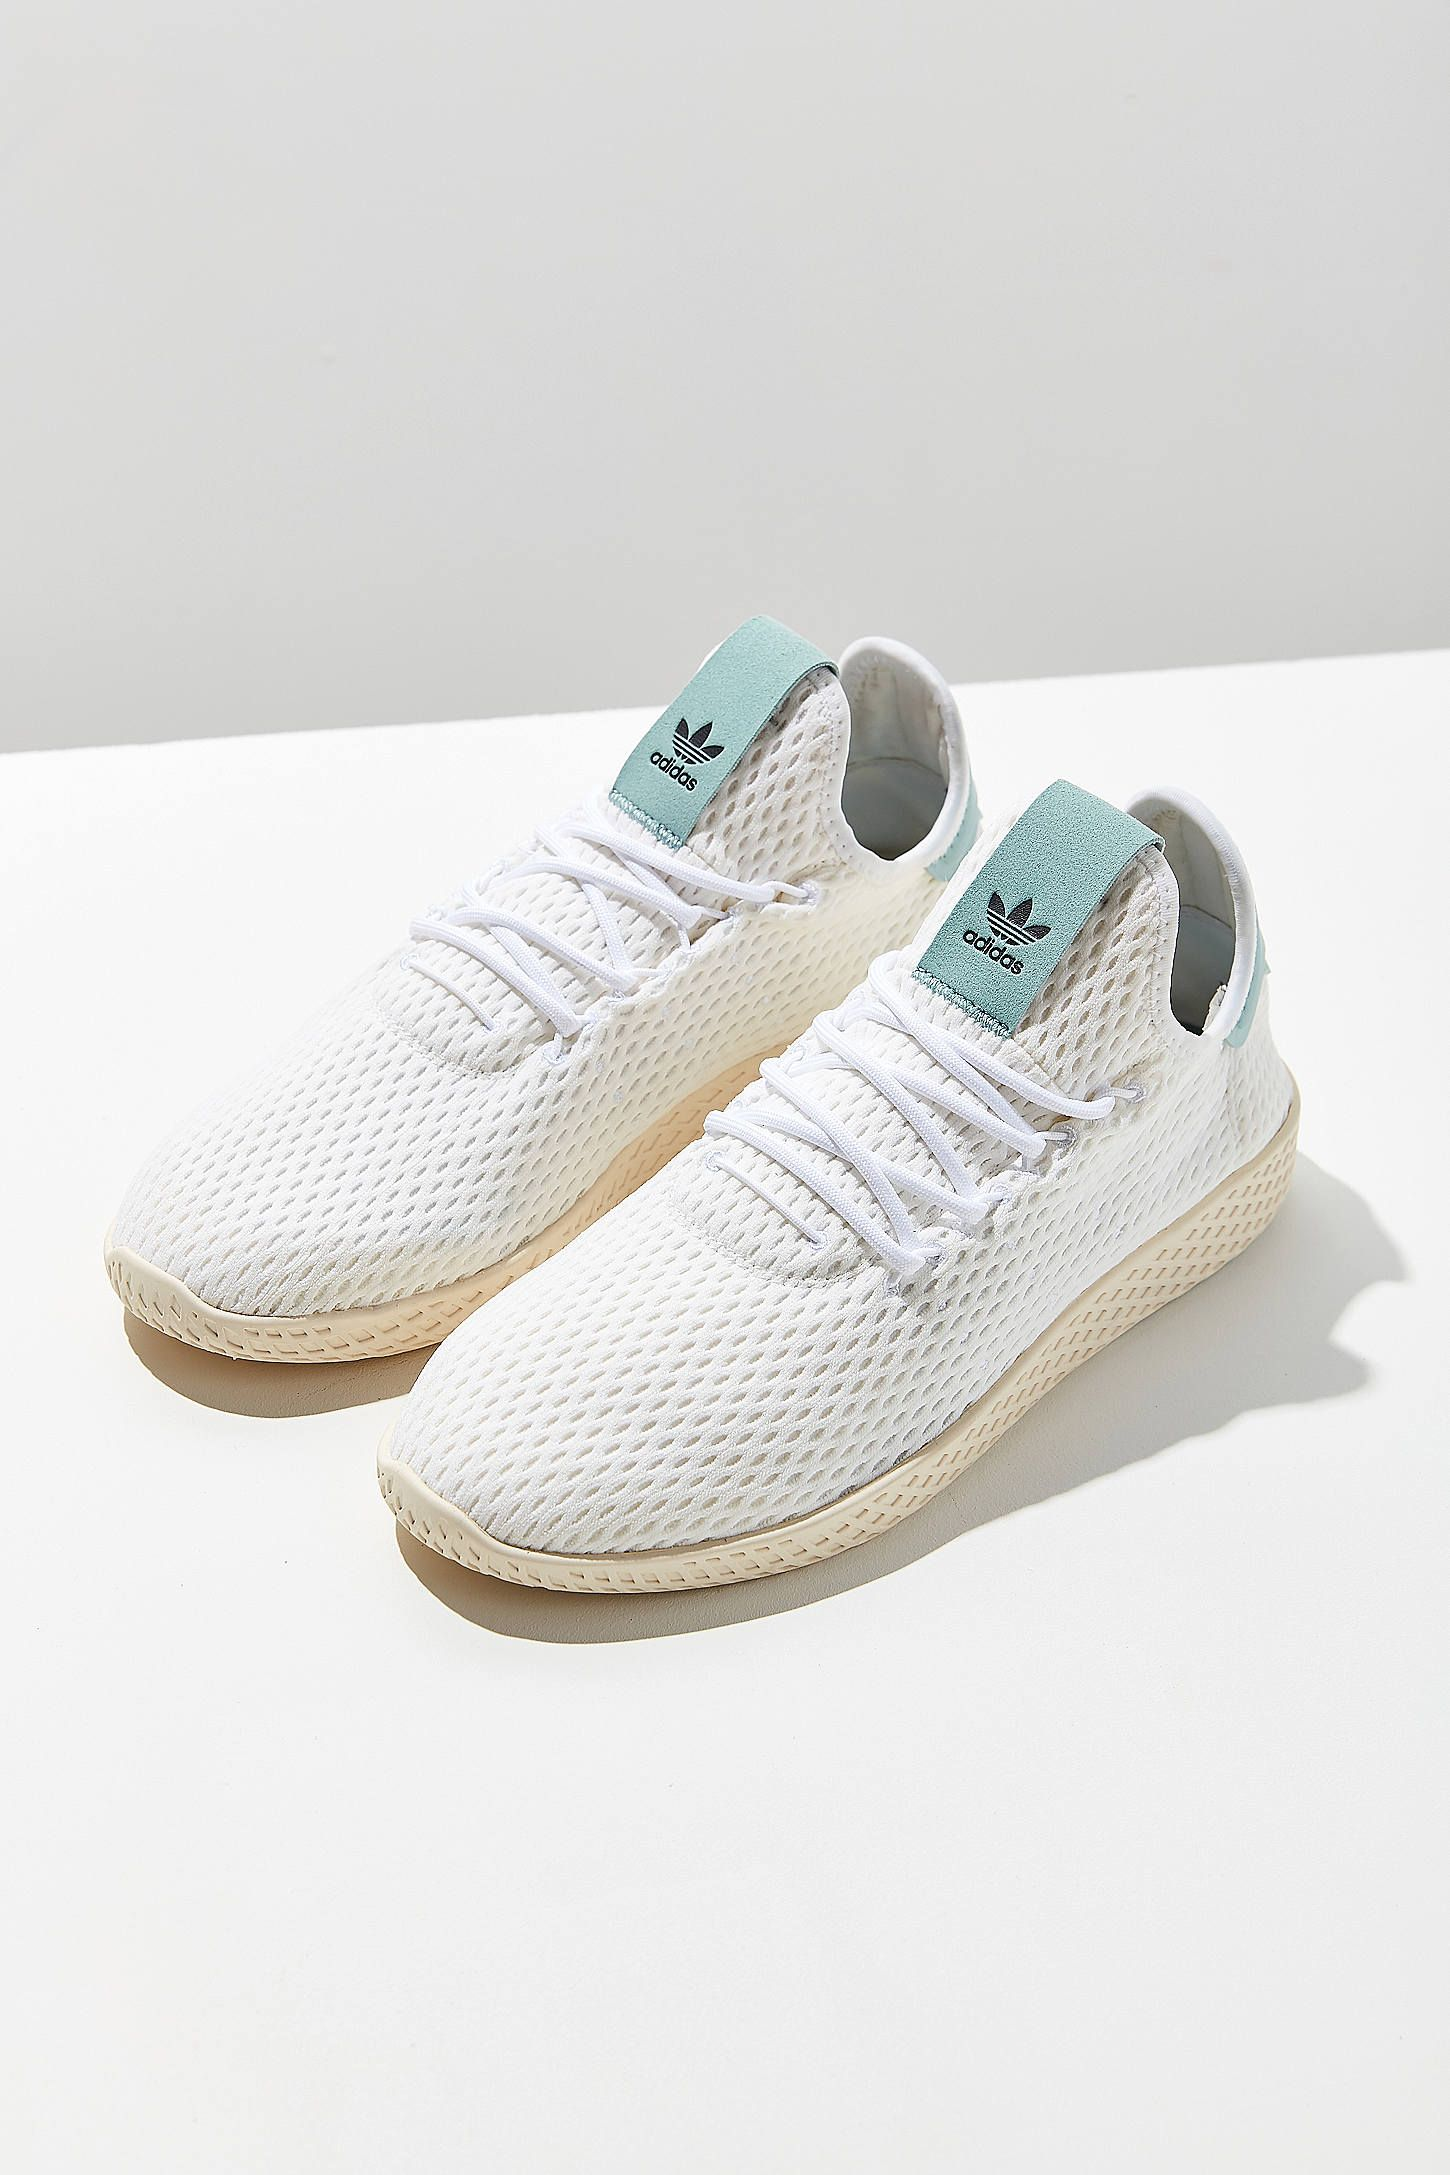 4f24bba32 Shop adidas Originals X Pharrell Williams Tennis Hu Sneaker at Urban  Outfitters today. We carry all the latest styles